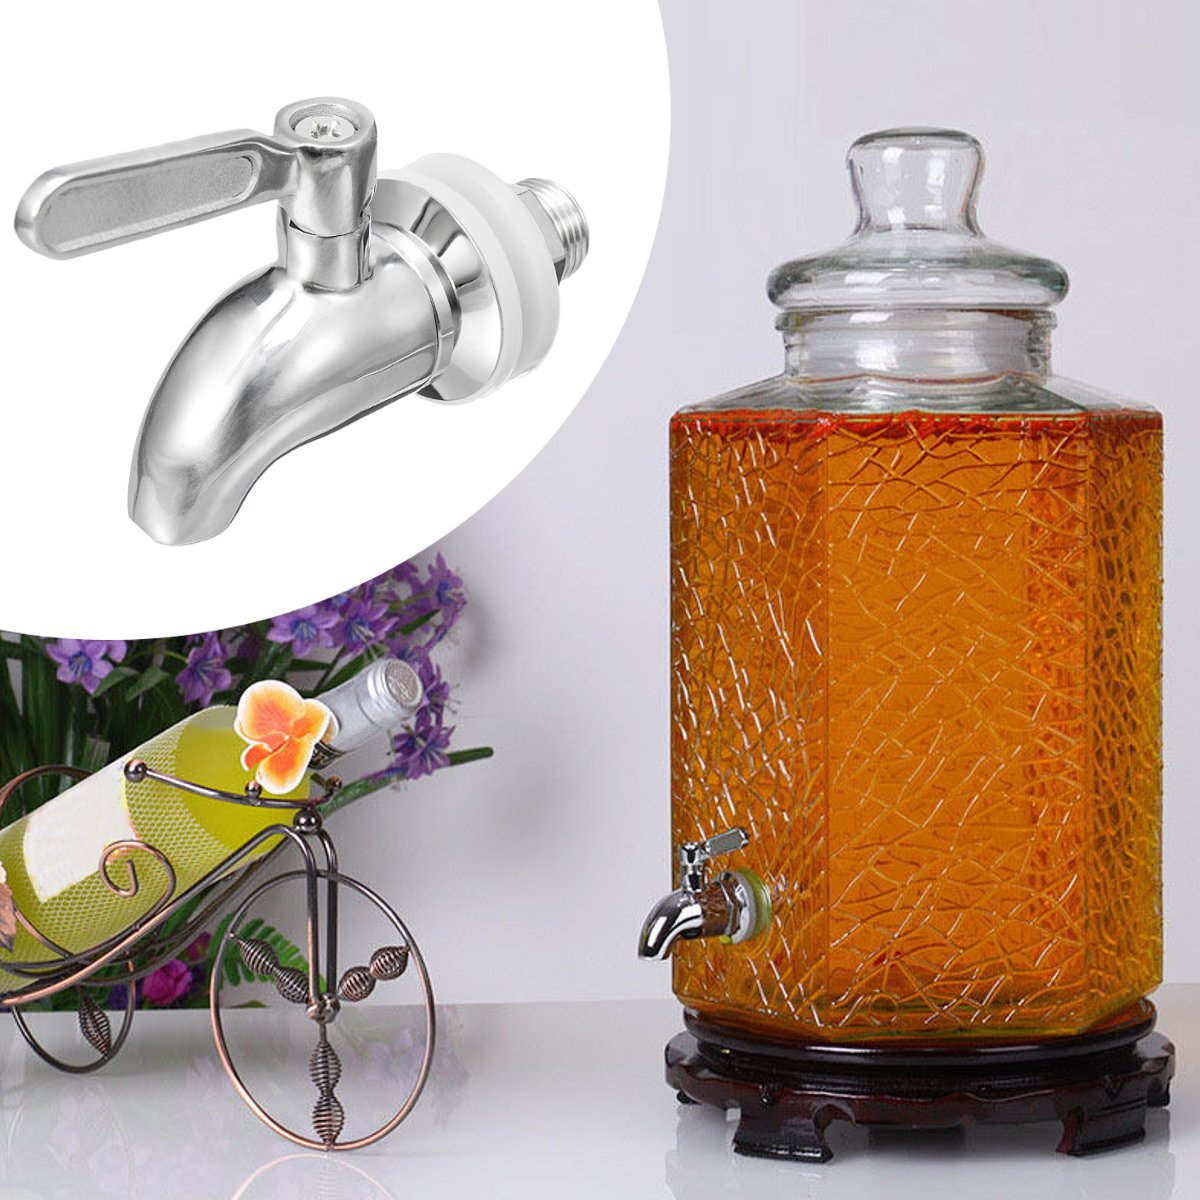 M16 Silver Stainless Steel Faucet Barrel Tap For Drink Beverage Juice Water Coffee With The Switch